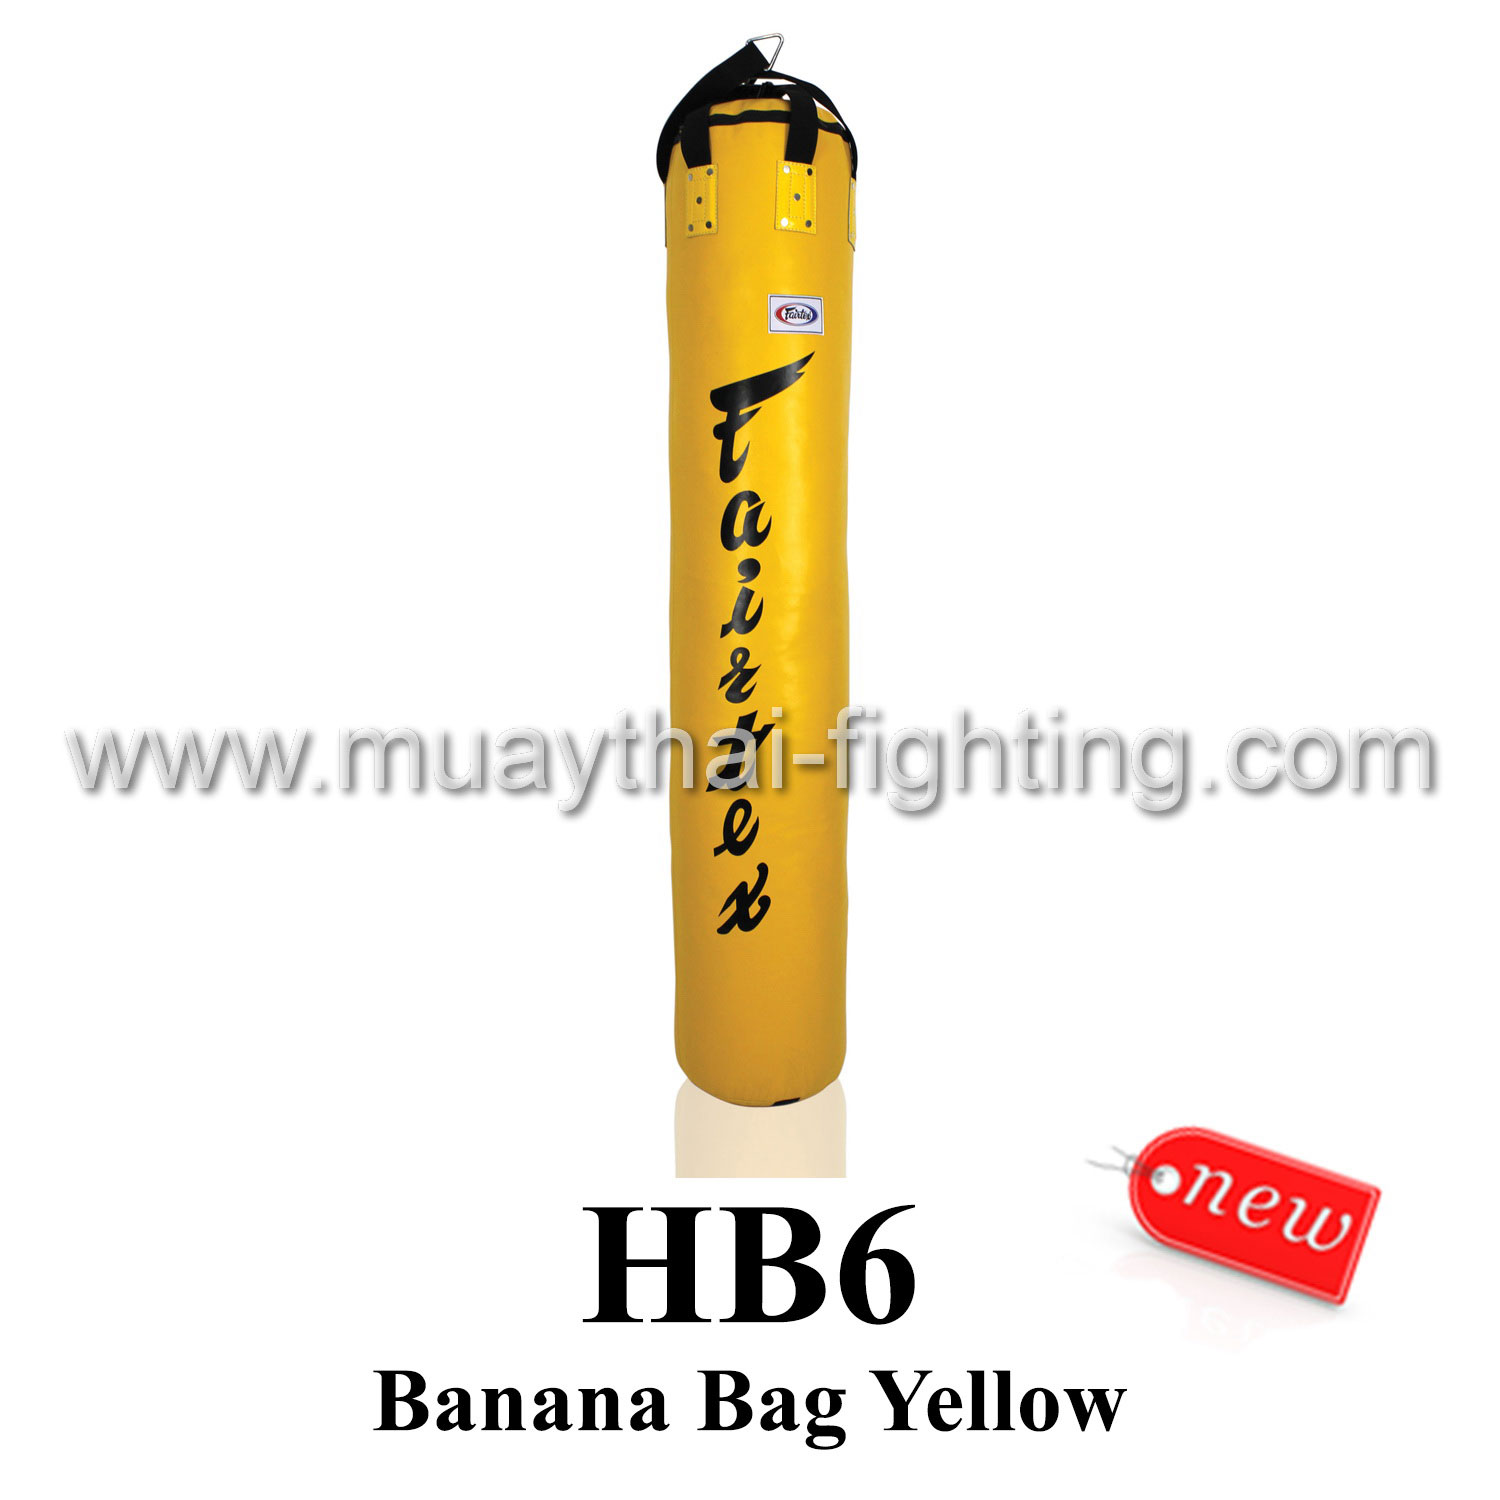 Fairtex 6ft Muay Thai Banana Bag HB6 (UnFilled)- Yellow